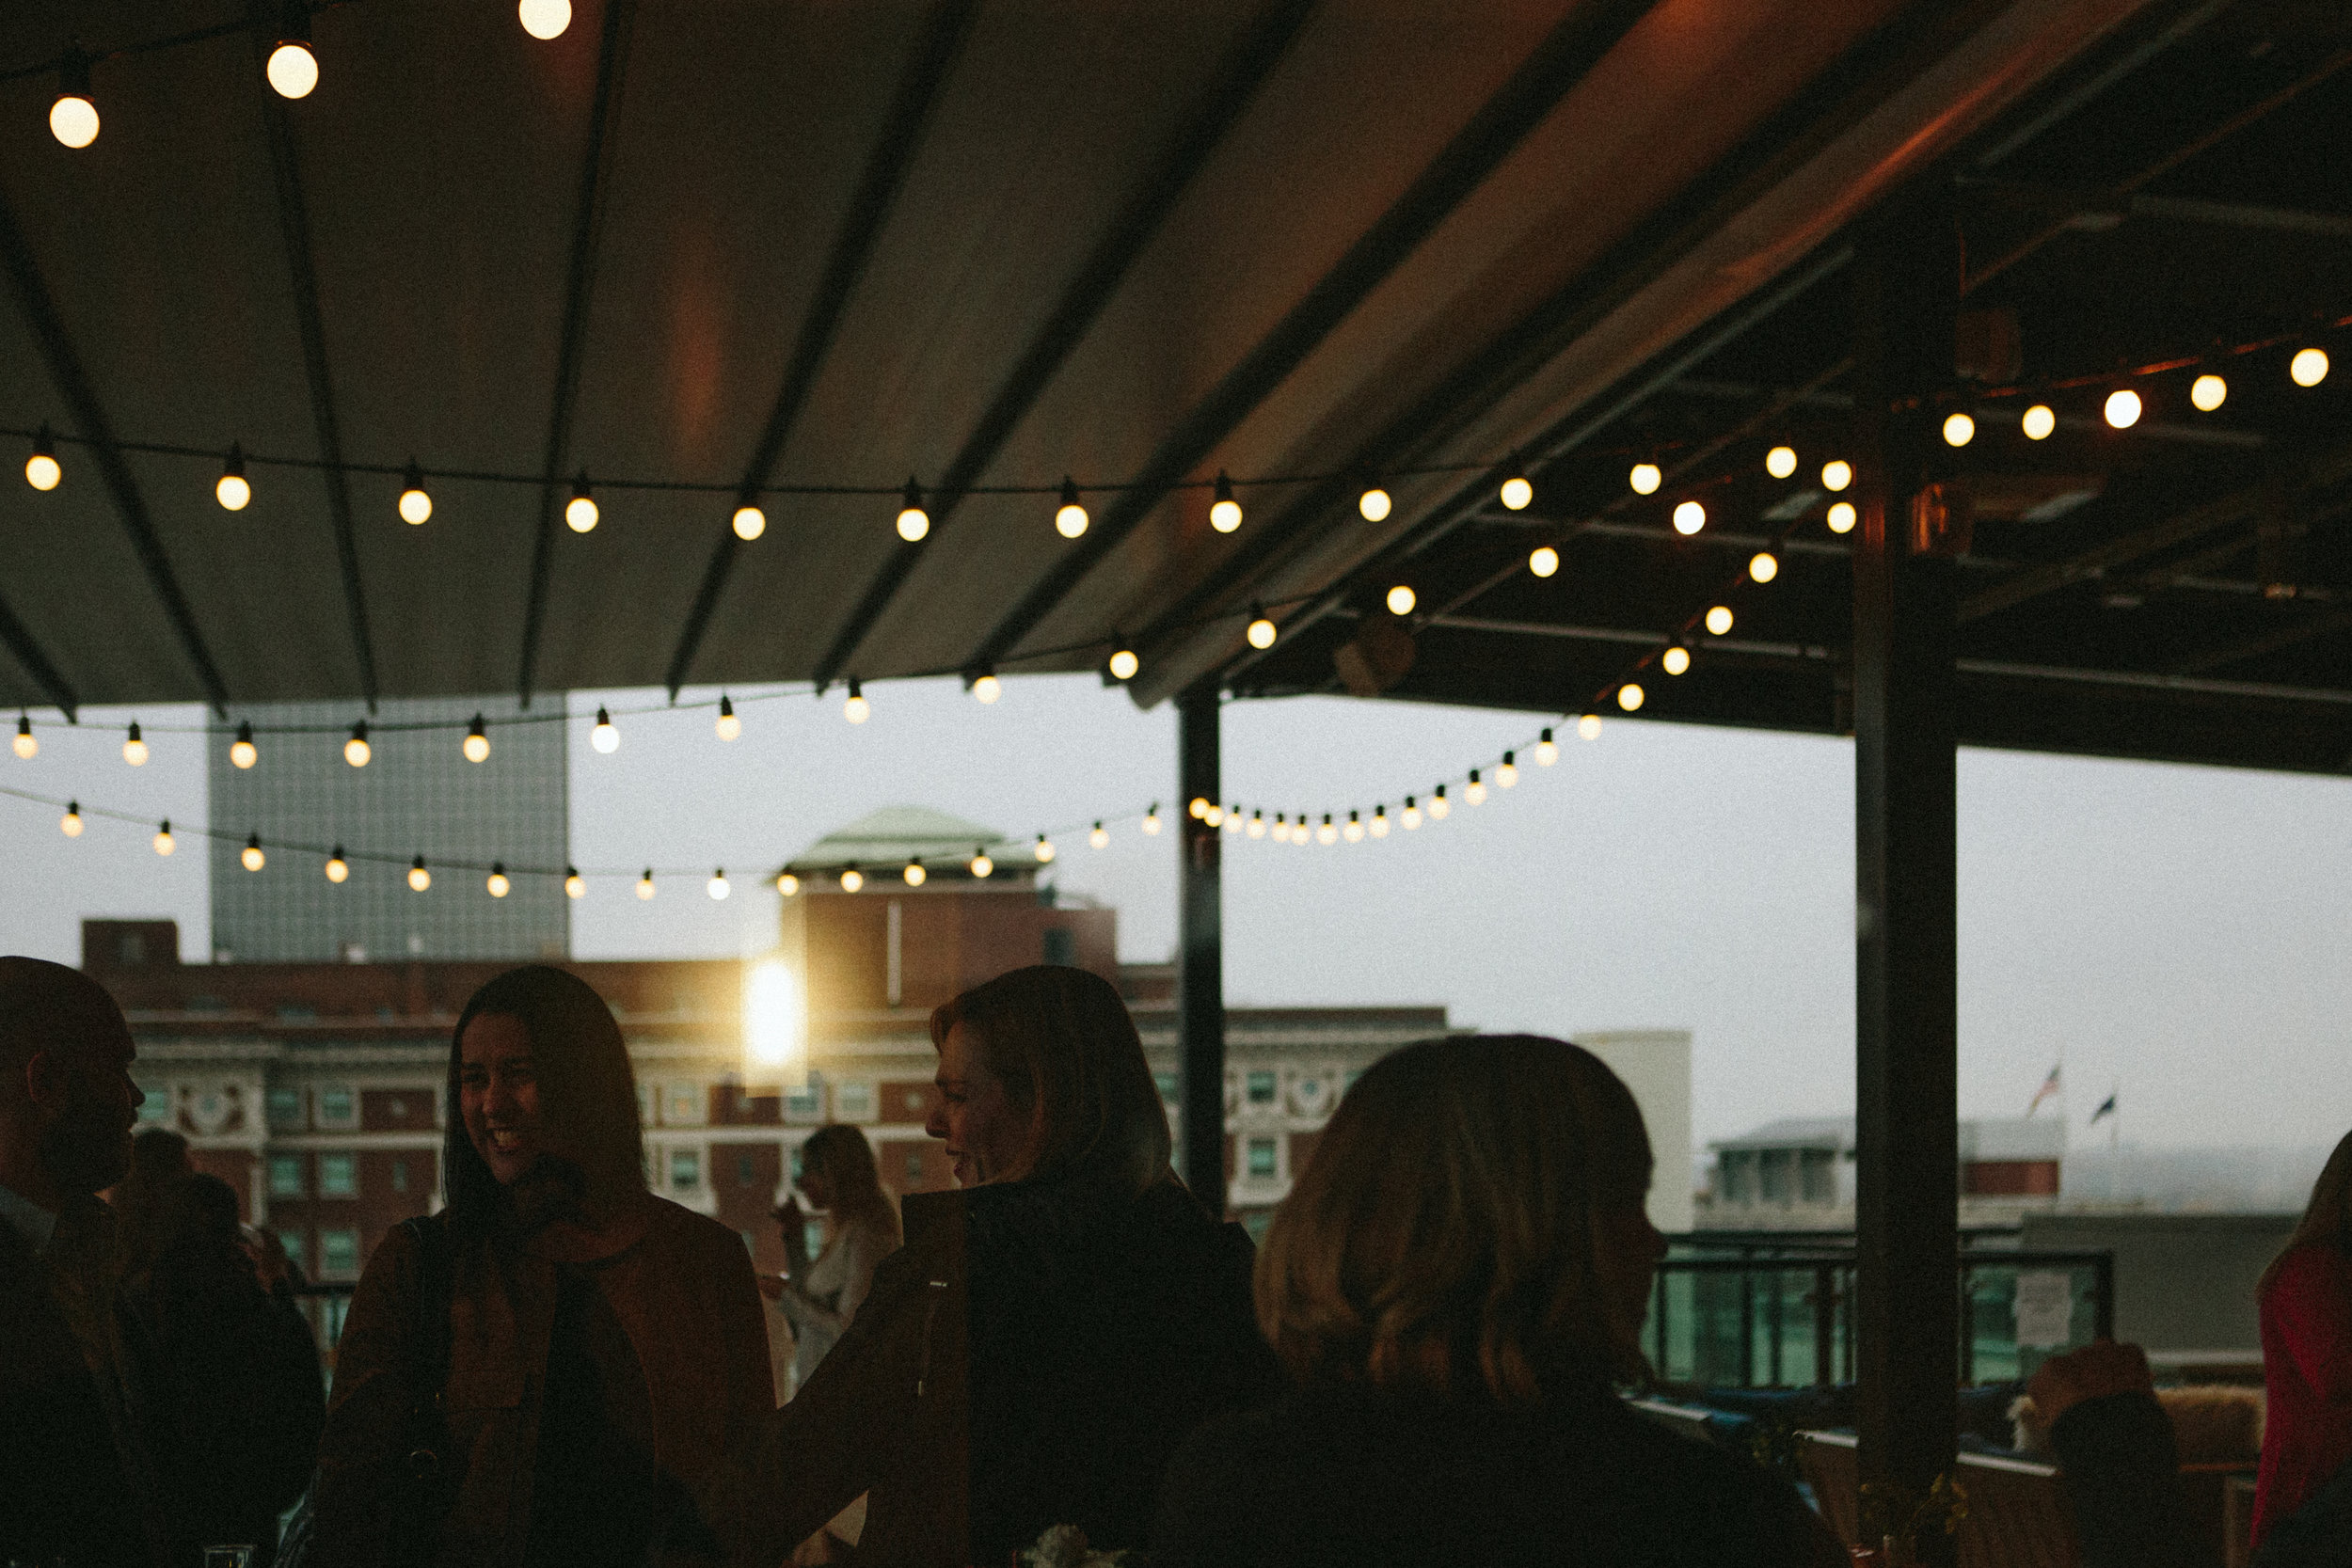 event photography inspiration